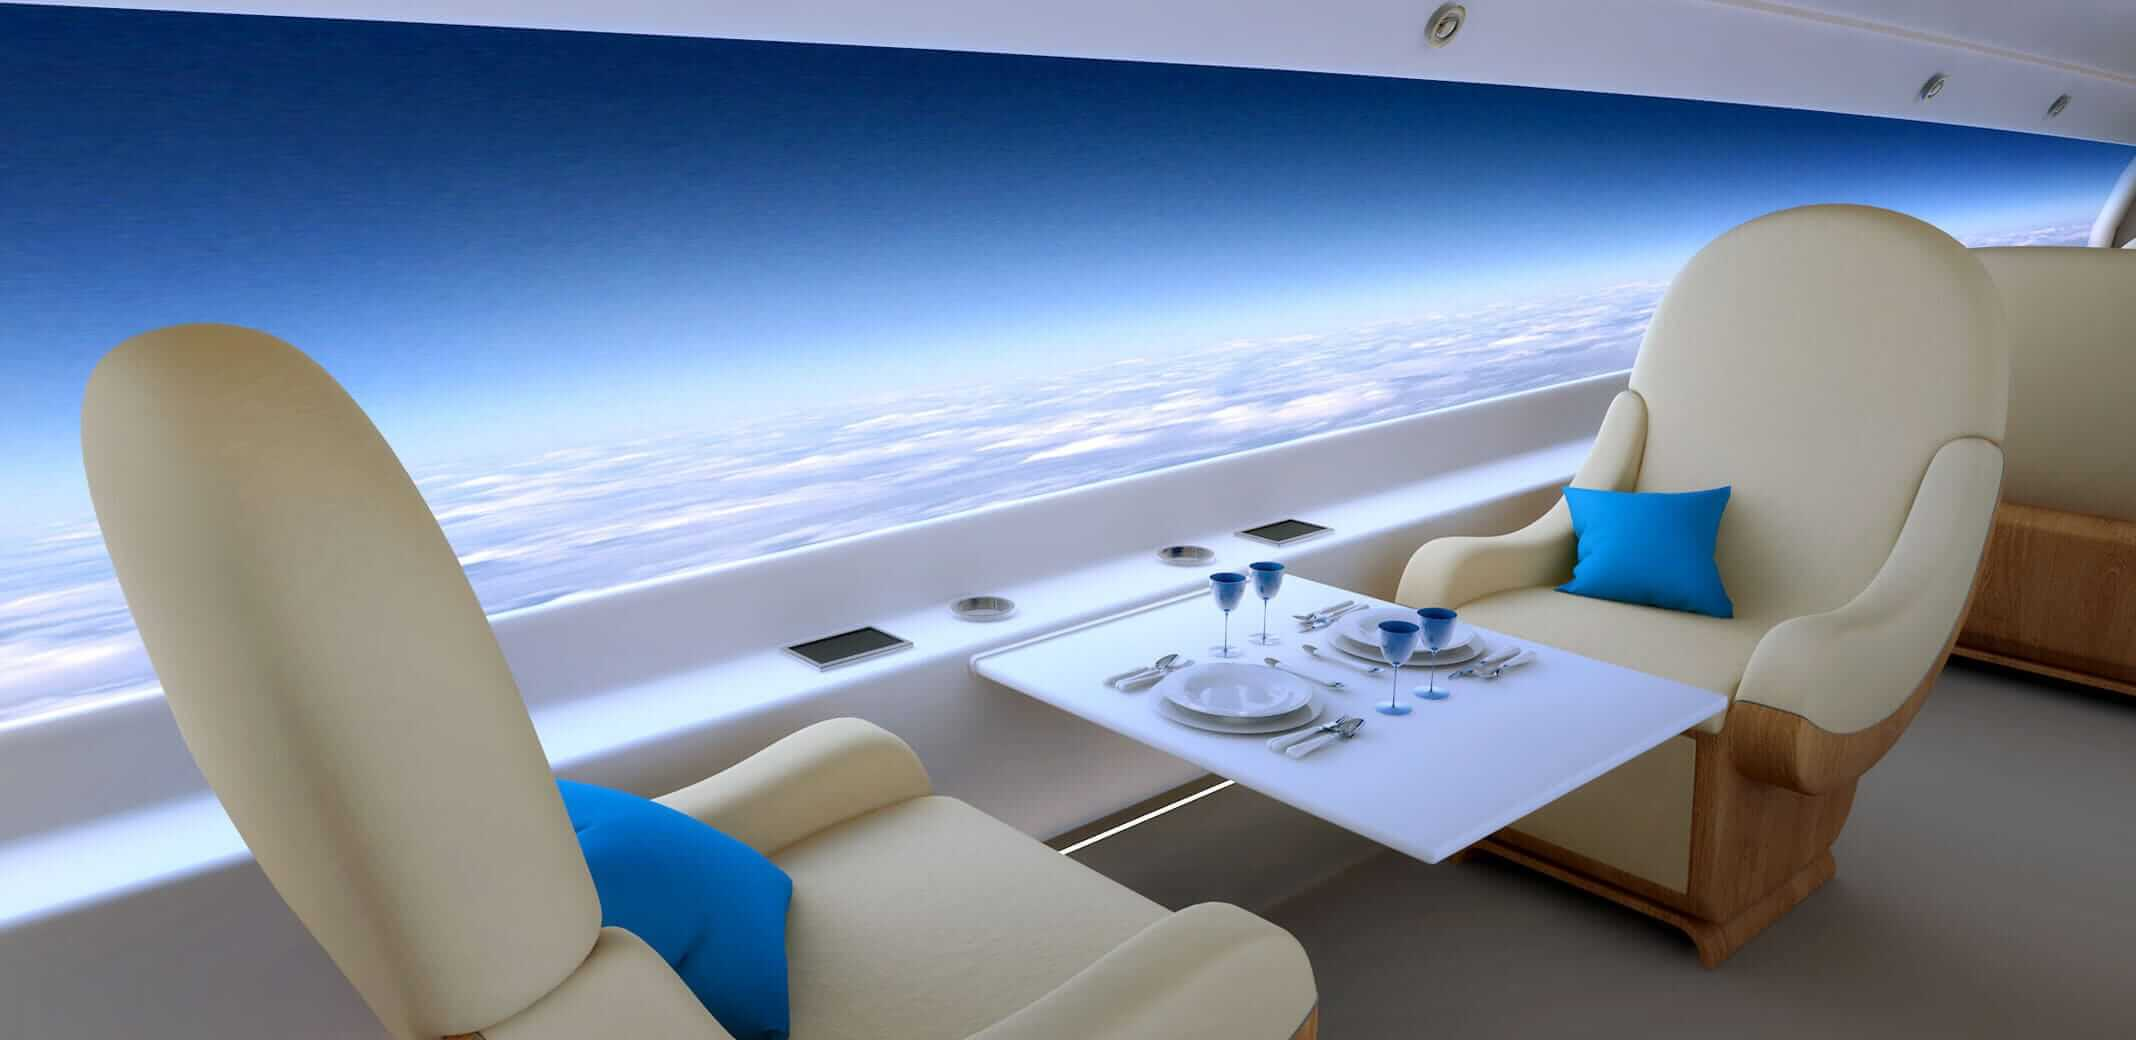 Future planes without windows